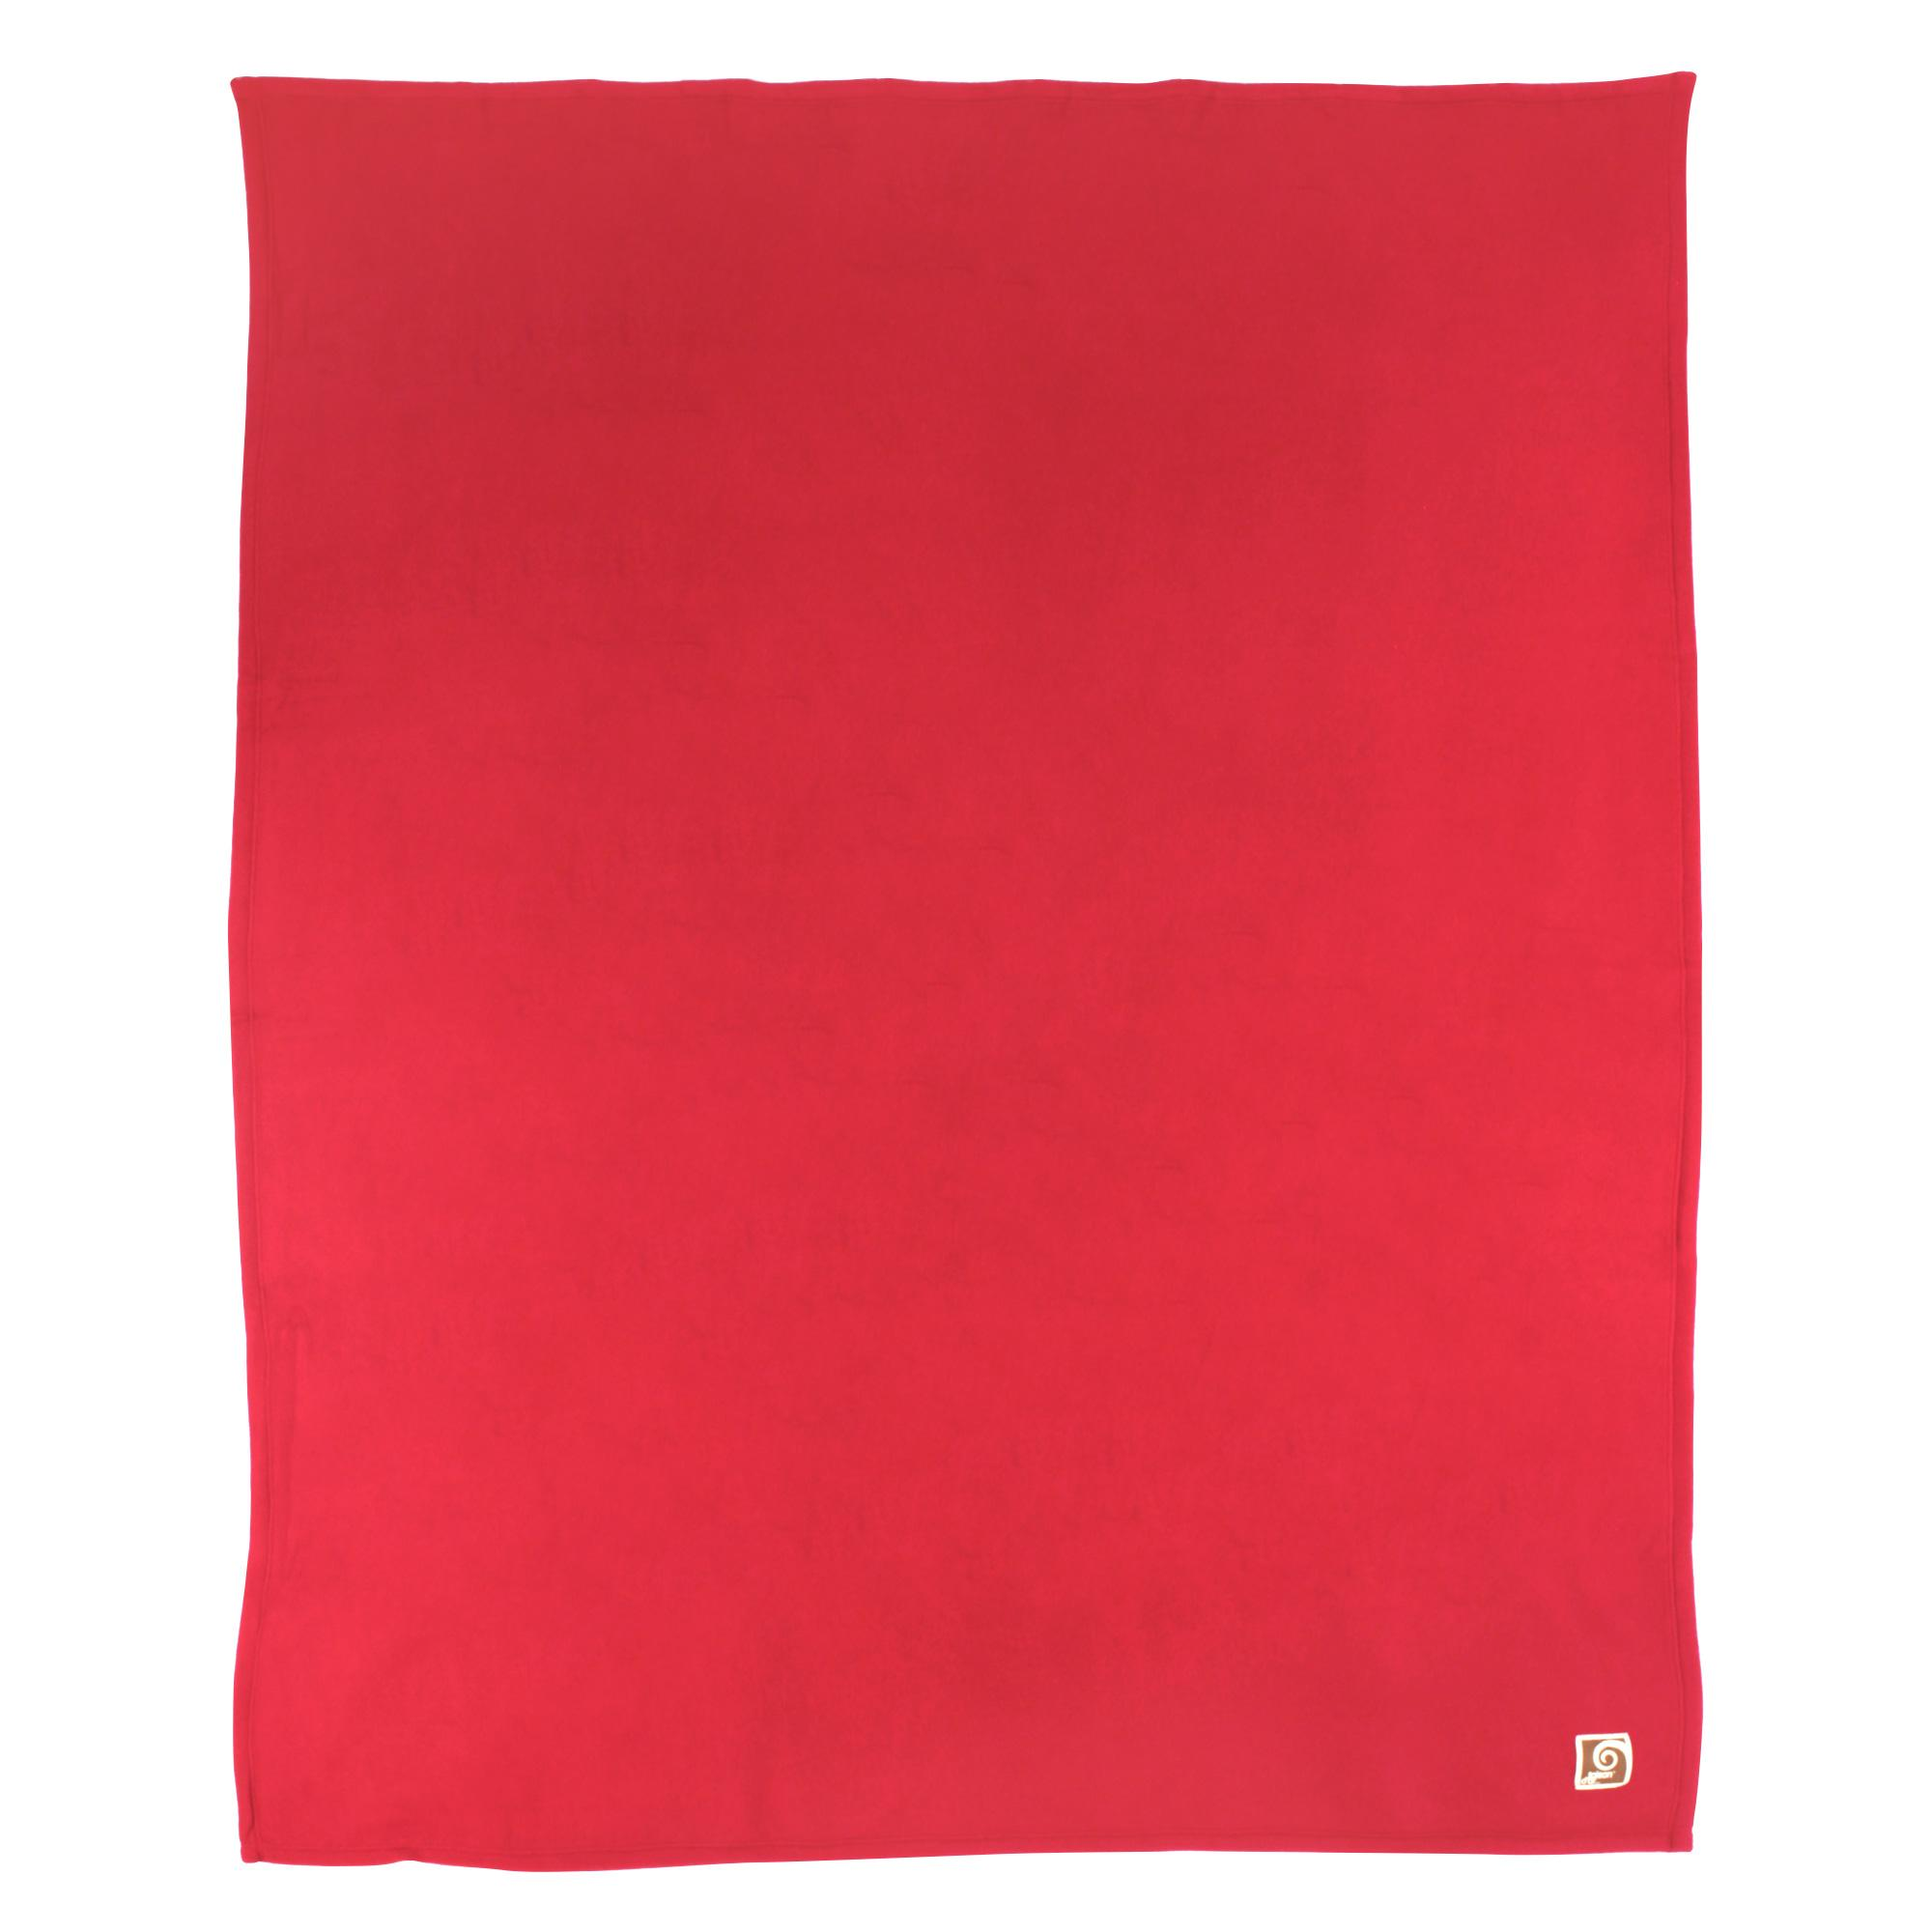 Couverture-polaire-220x240-100-Polyester-350g-m2-TEDDY-Rouge-Framboise